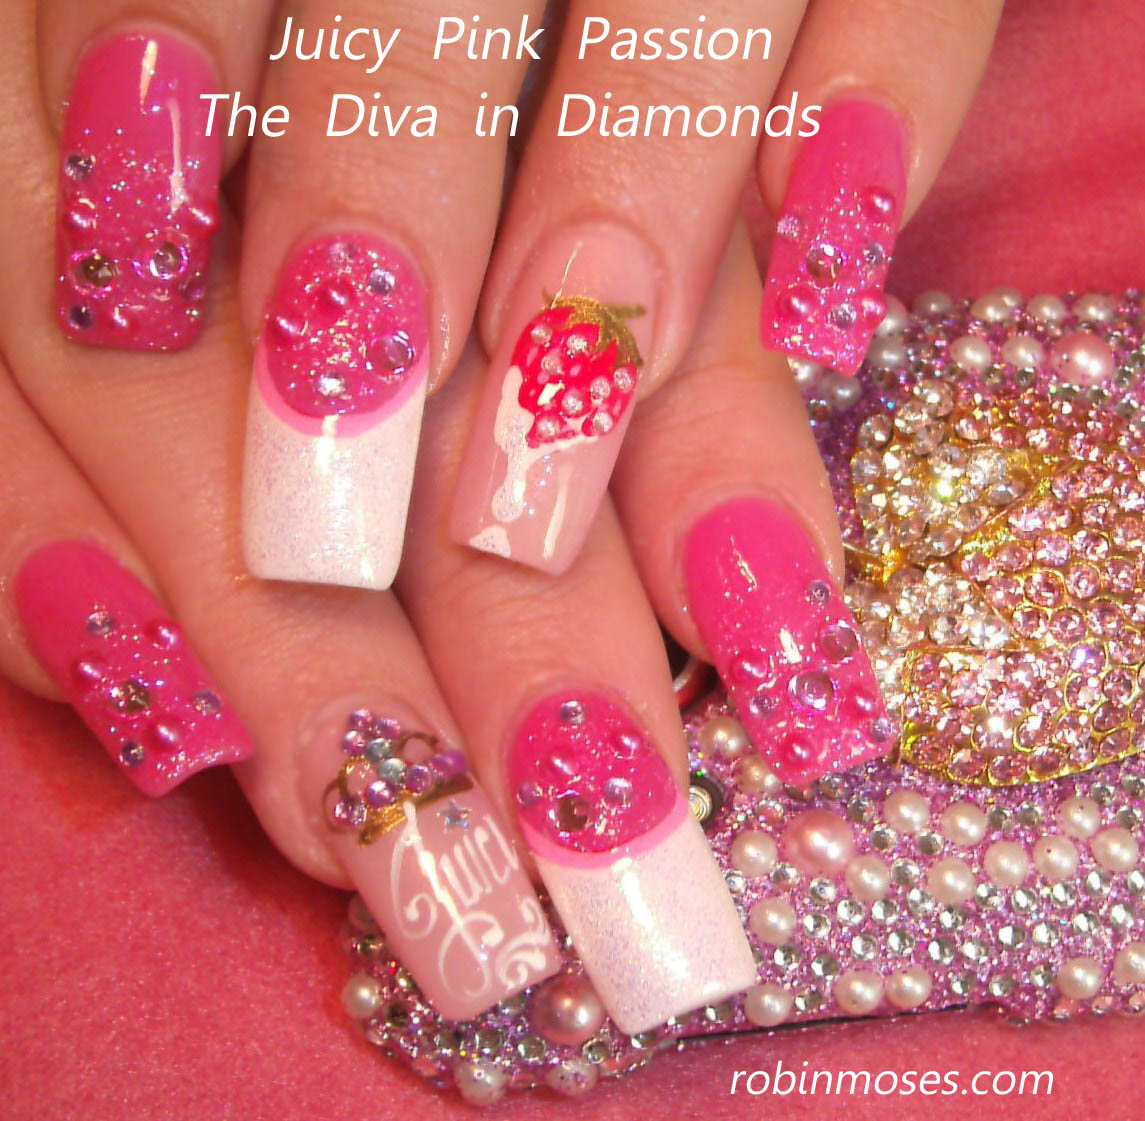 Juicy Pink Passion - Juicy Pink Passion